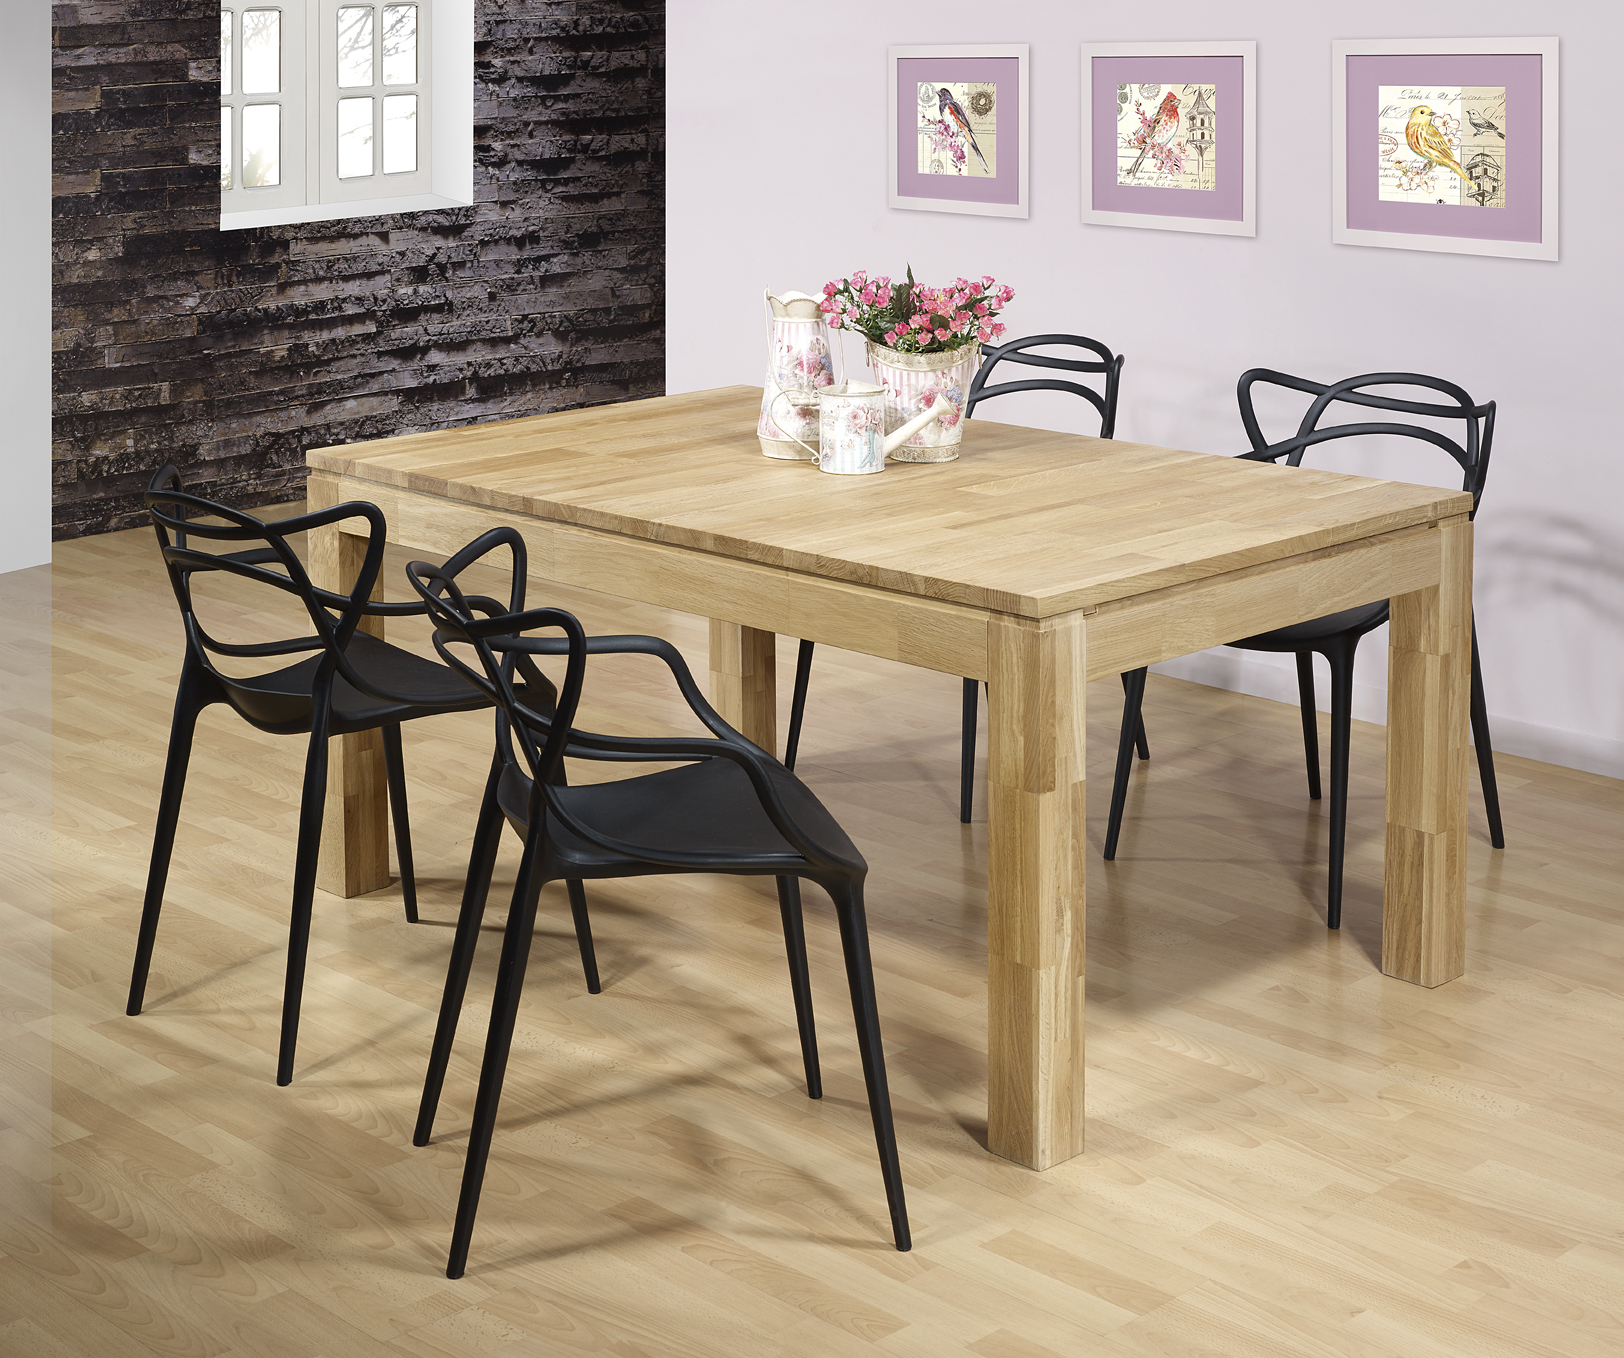 table de repas rectangulaire 160x100 ecolo en ch ne ligne contemporaine 1 disponible meuble en. Black Bedroom Furniture Sets. Home Design Ideas